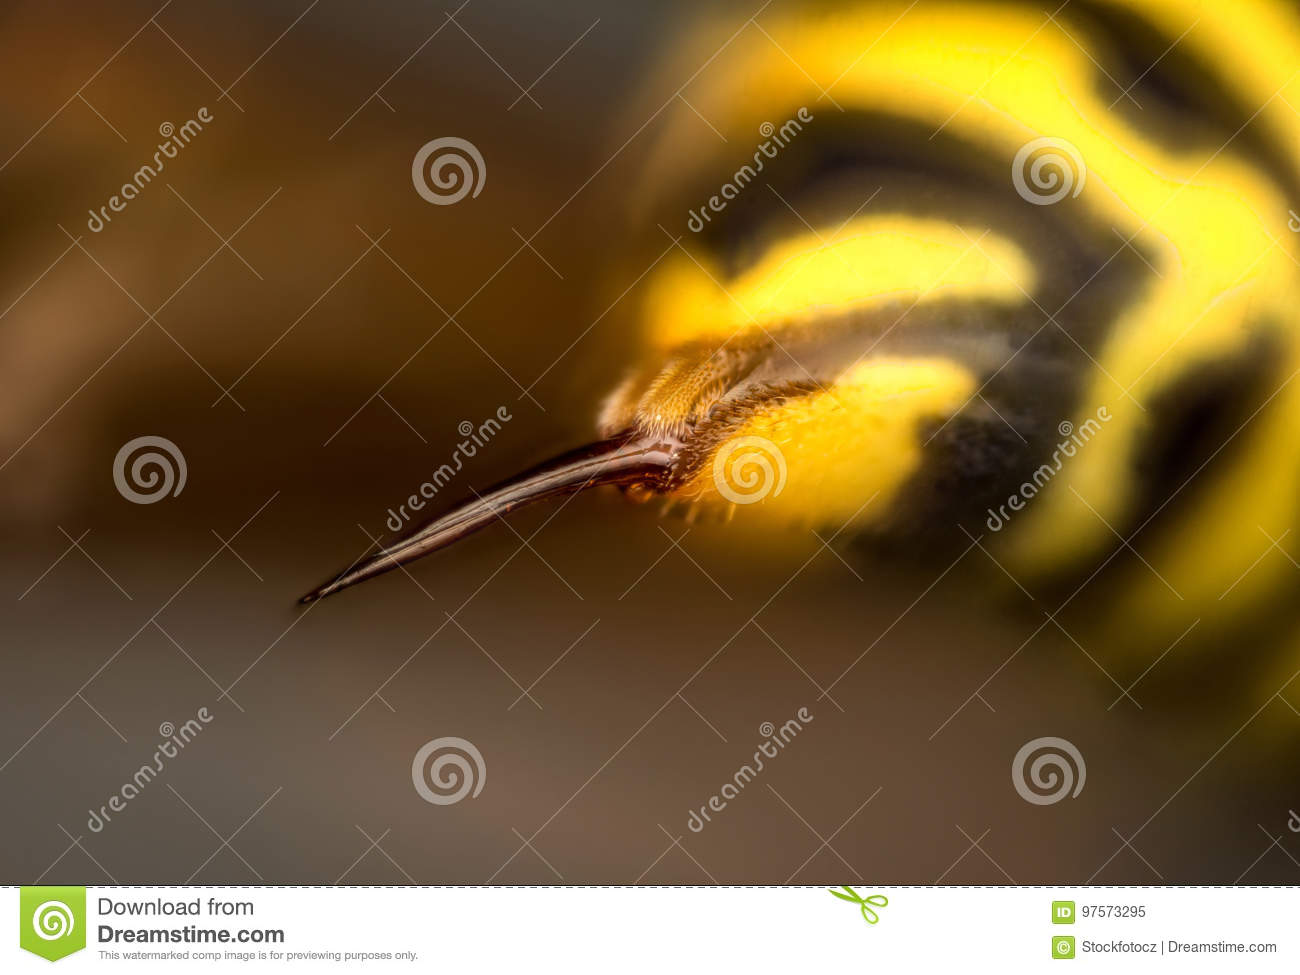 Sting of wasp